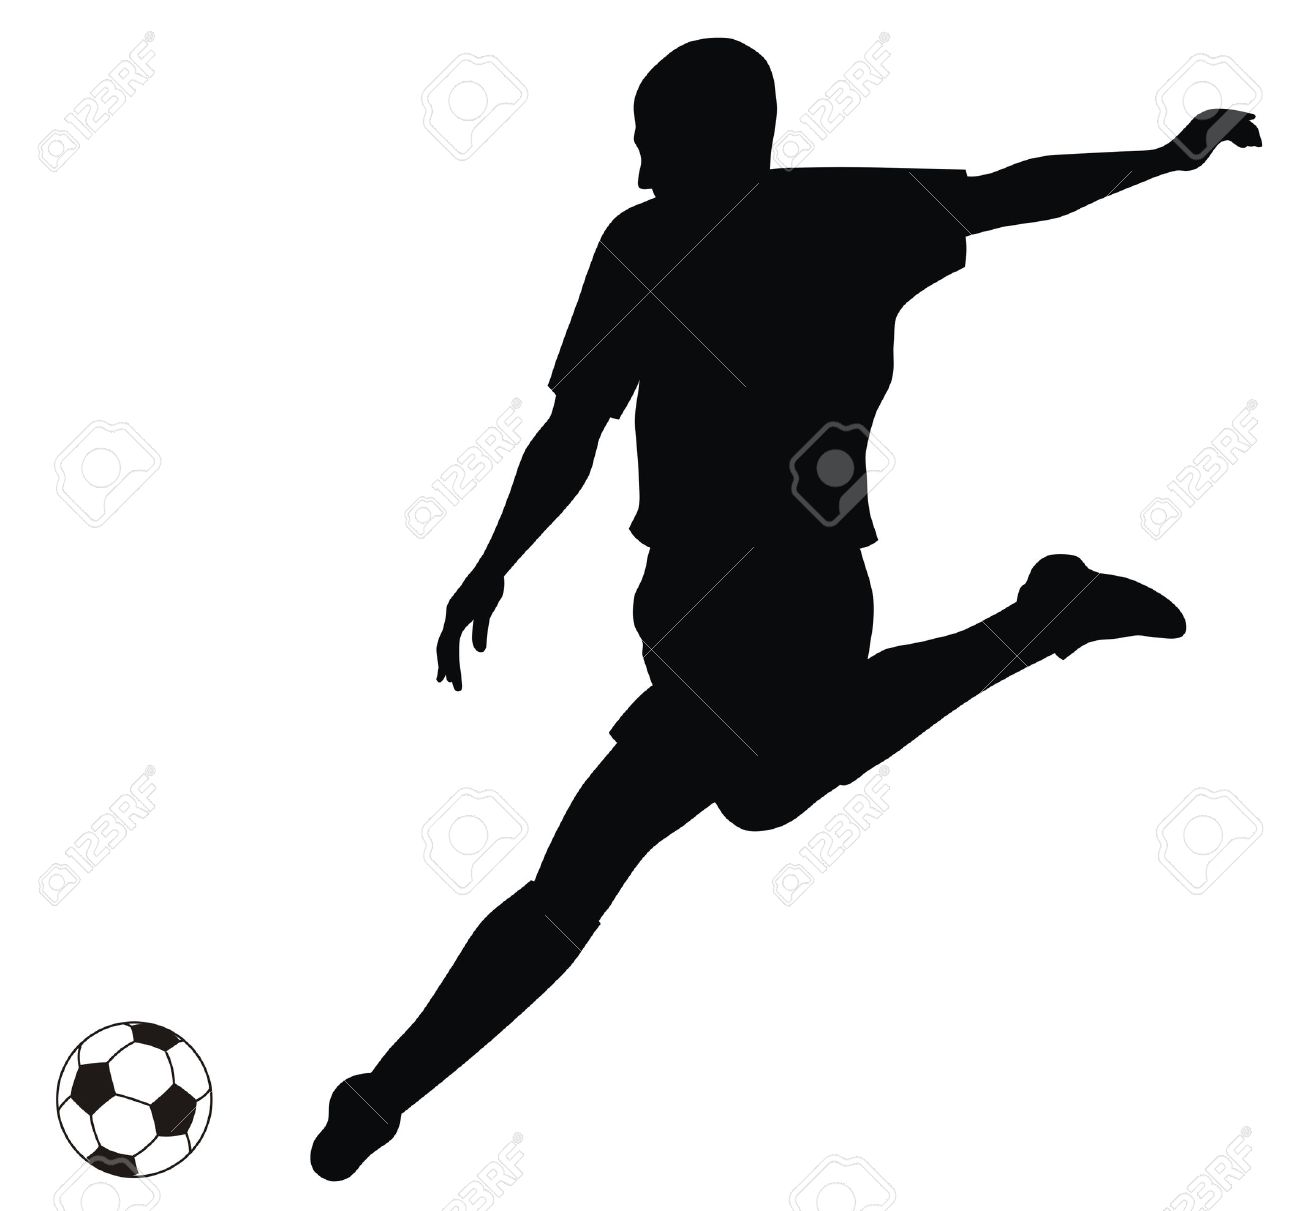 Abstract vector illustration of footbal player silhouette - 6574874